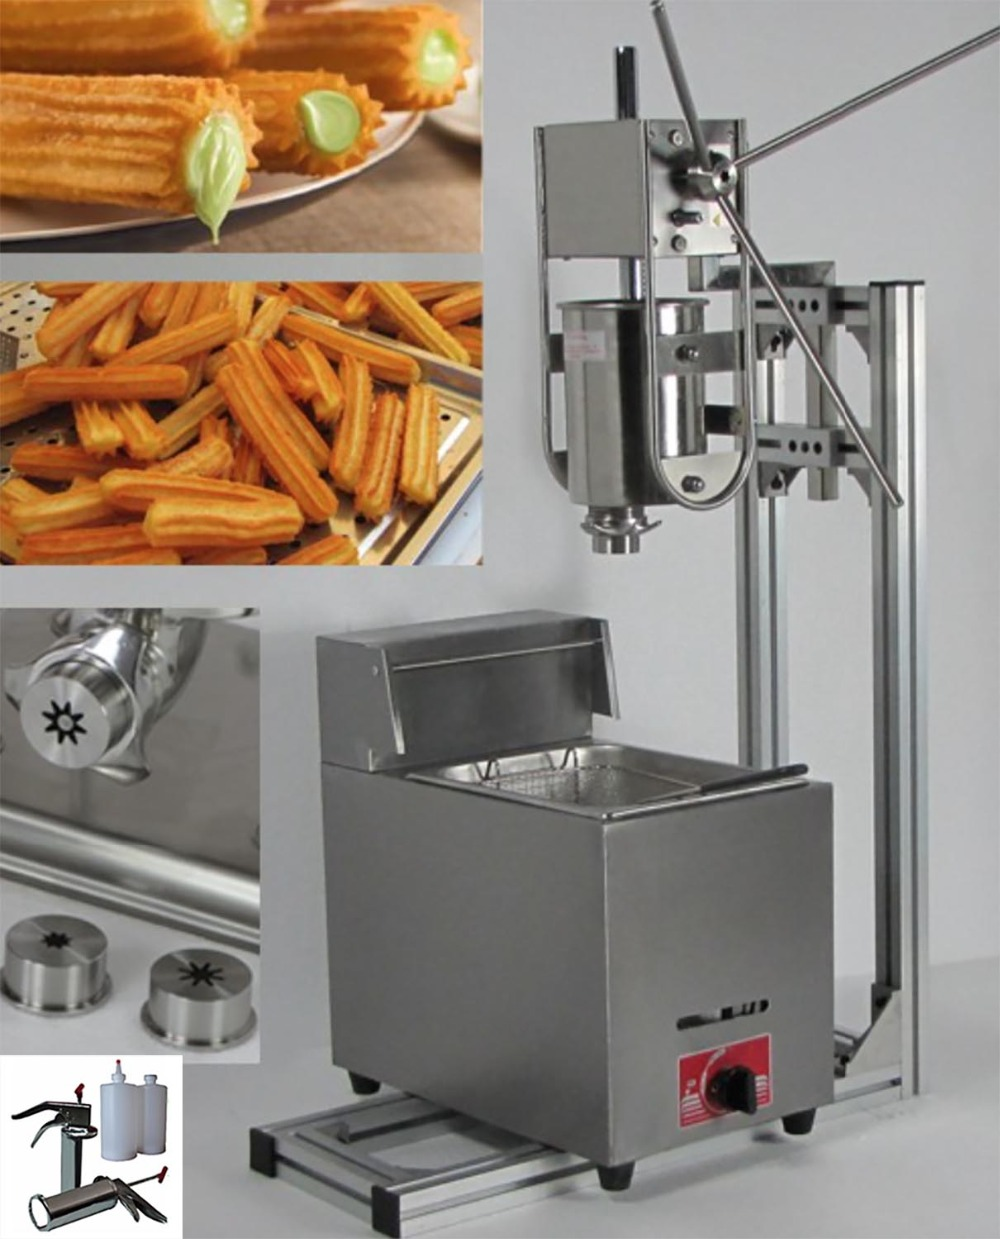 4 in 1 3L Manual Churros Maker + Working Stand + 6L Gas Fryer + 700ml Churros Filler fast food leisure fast food equipment stainless steel gas fryer 3l spanish churro maker machine